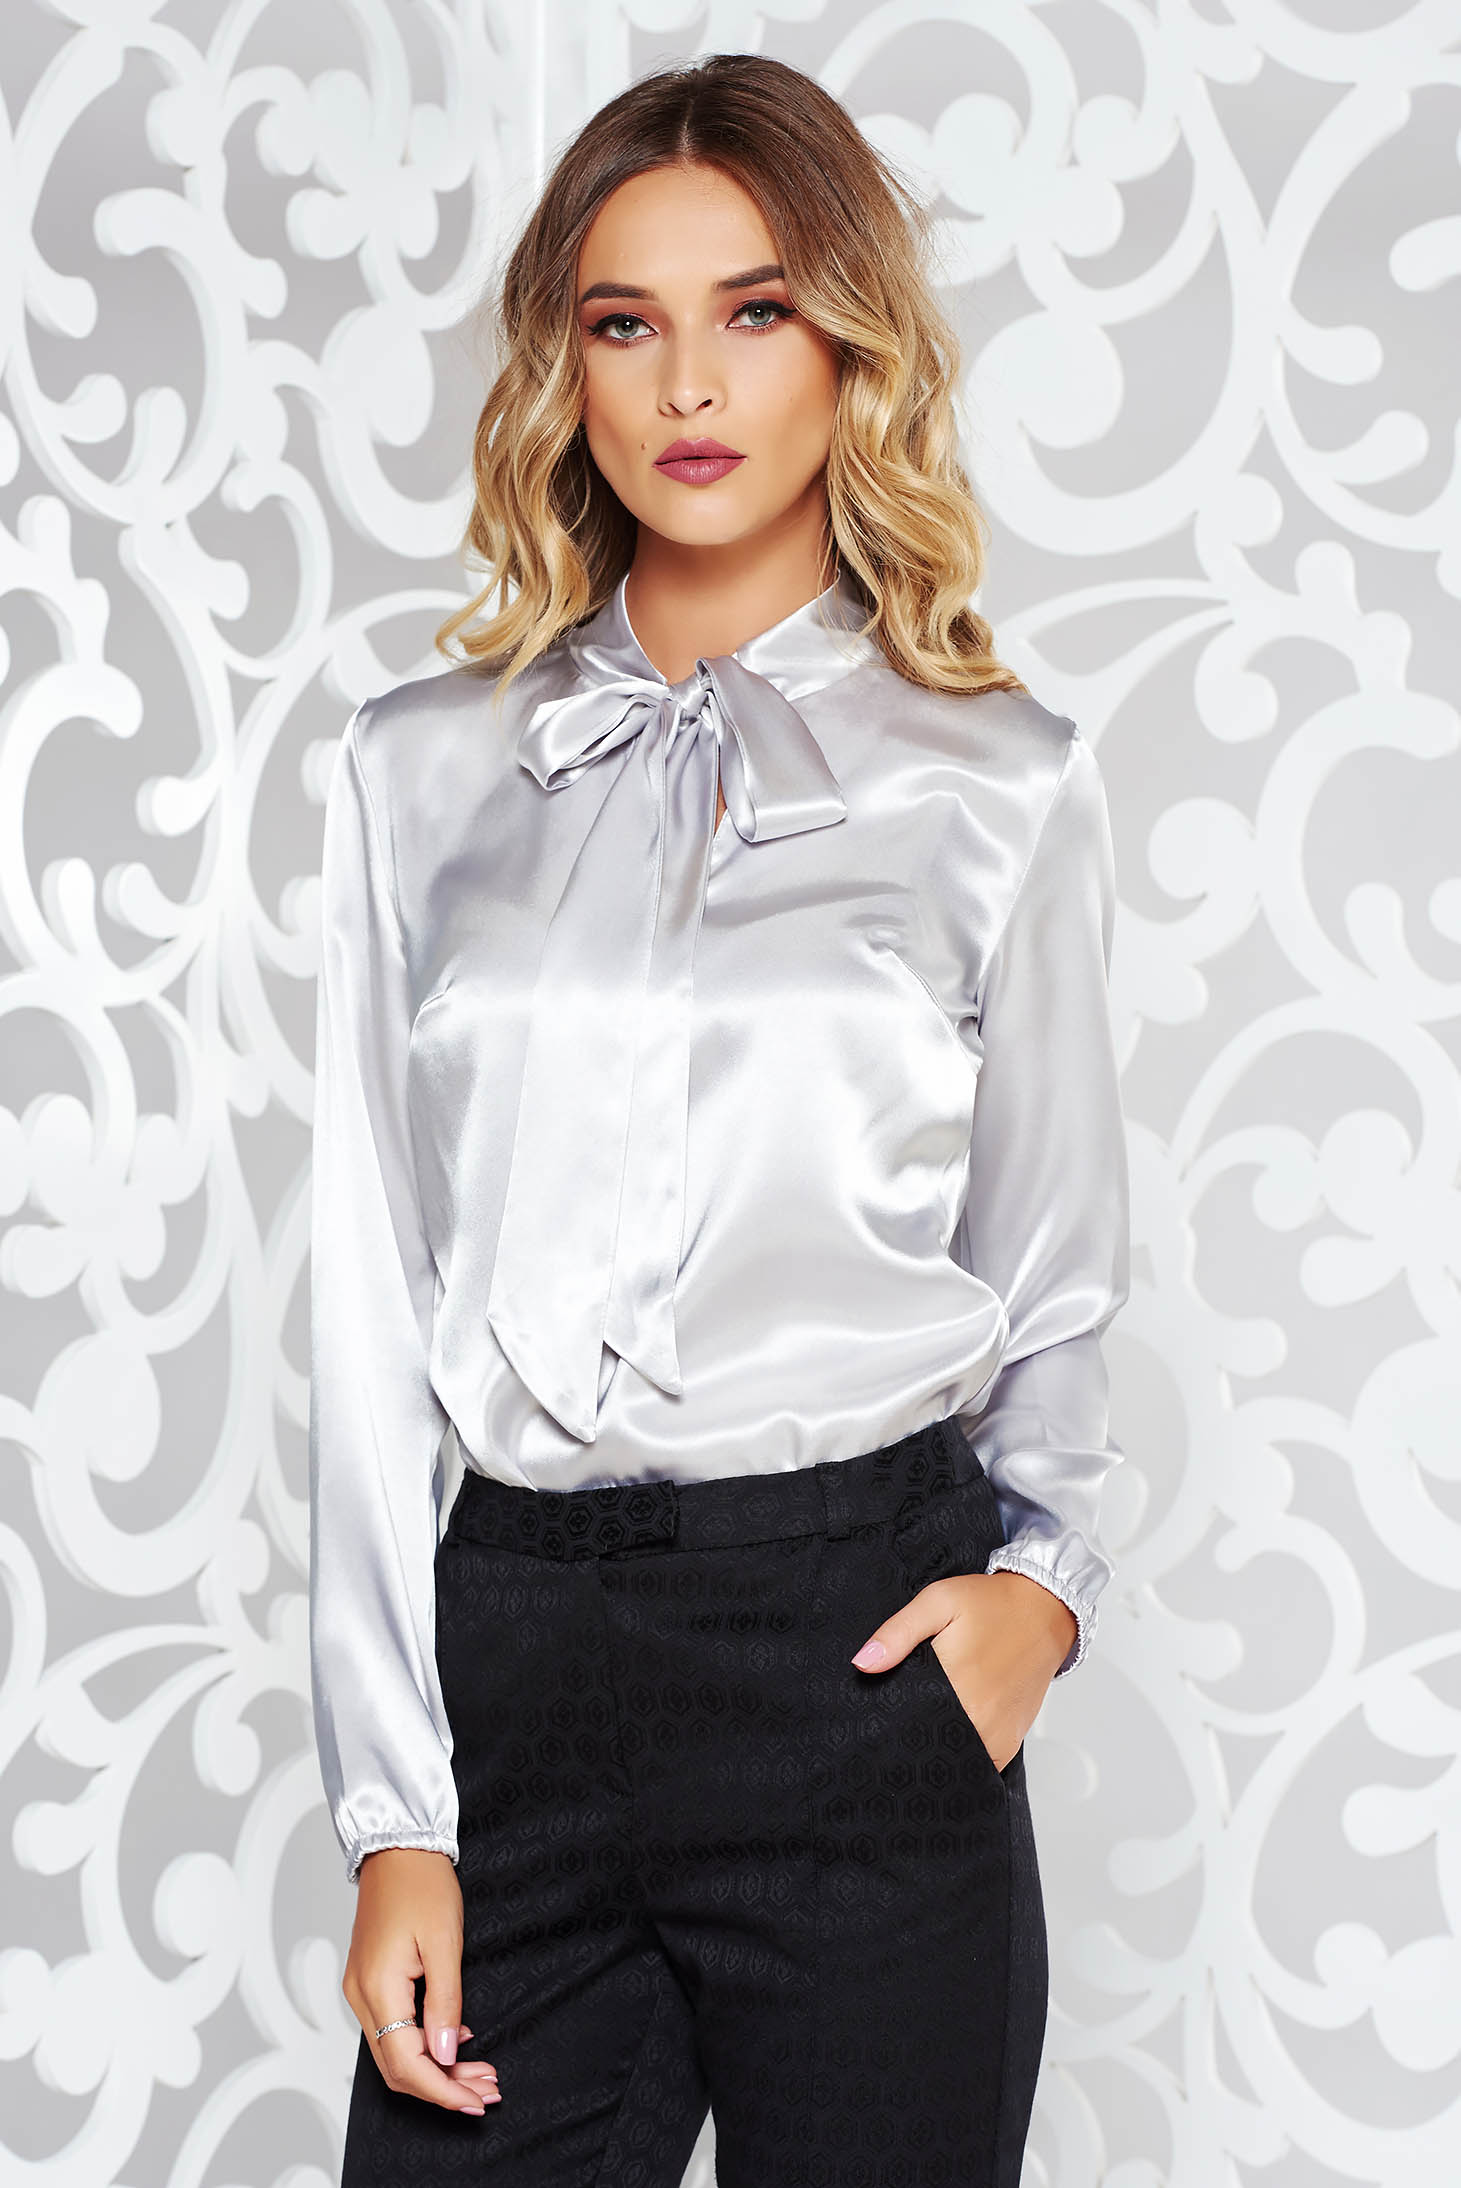 Greylady S Hearth February 2014: StarShinerS Grey Women`s Blouse Elegant With Easy Cut From